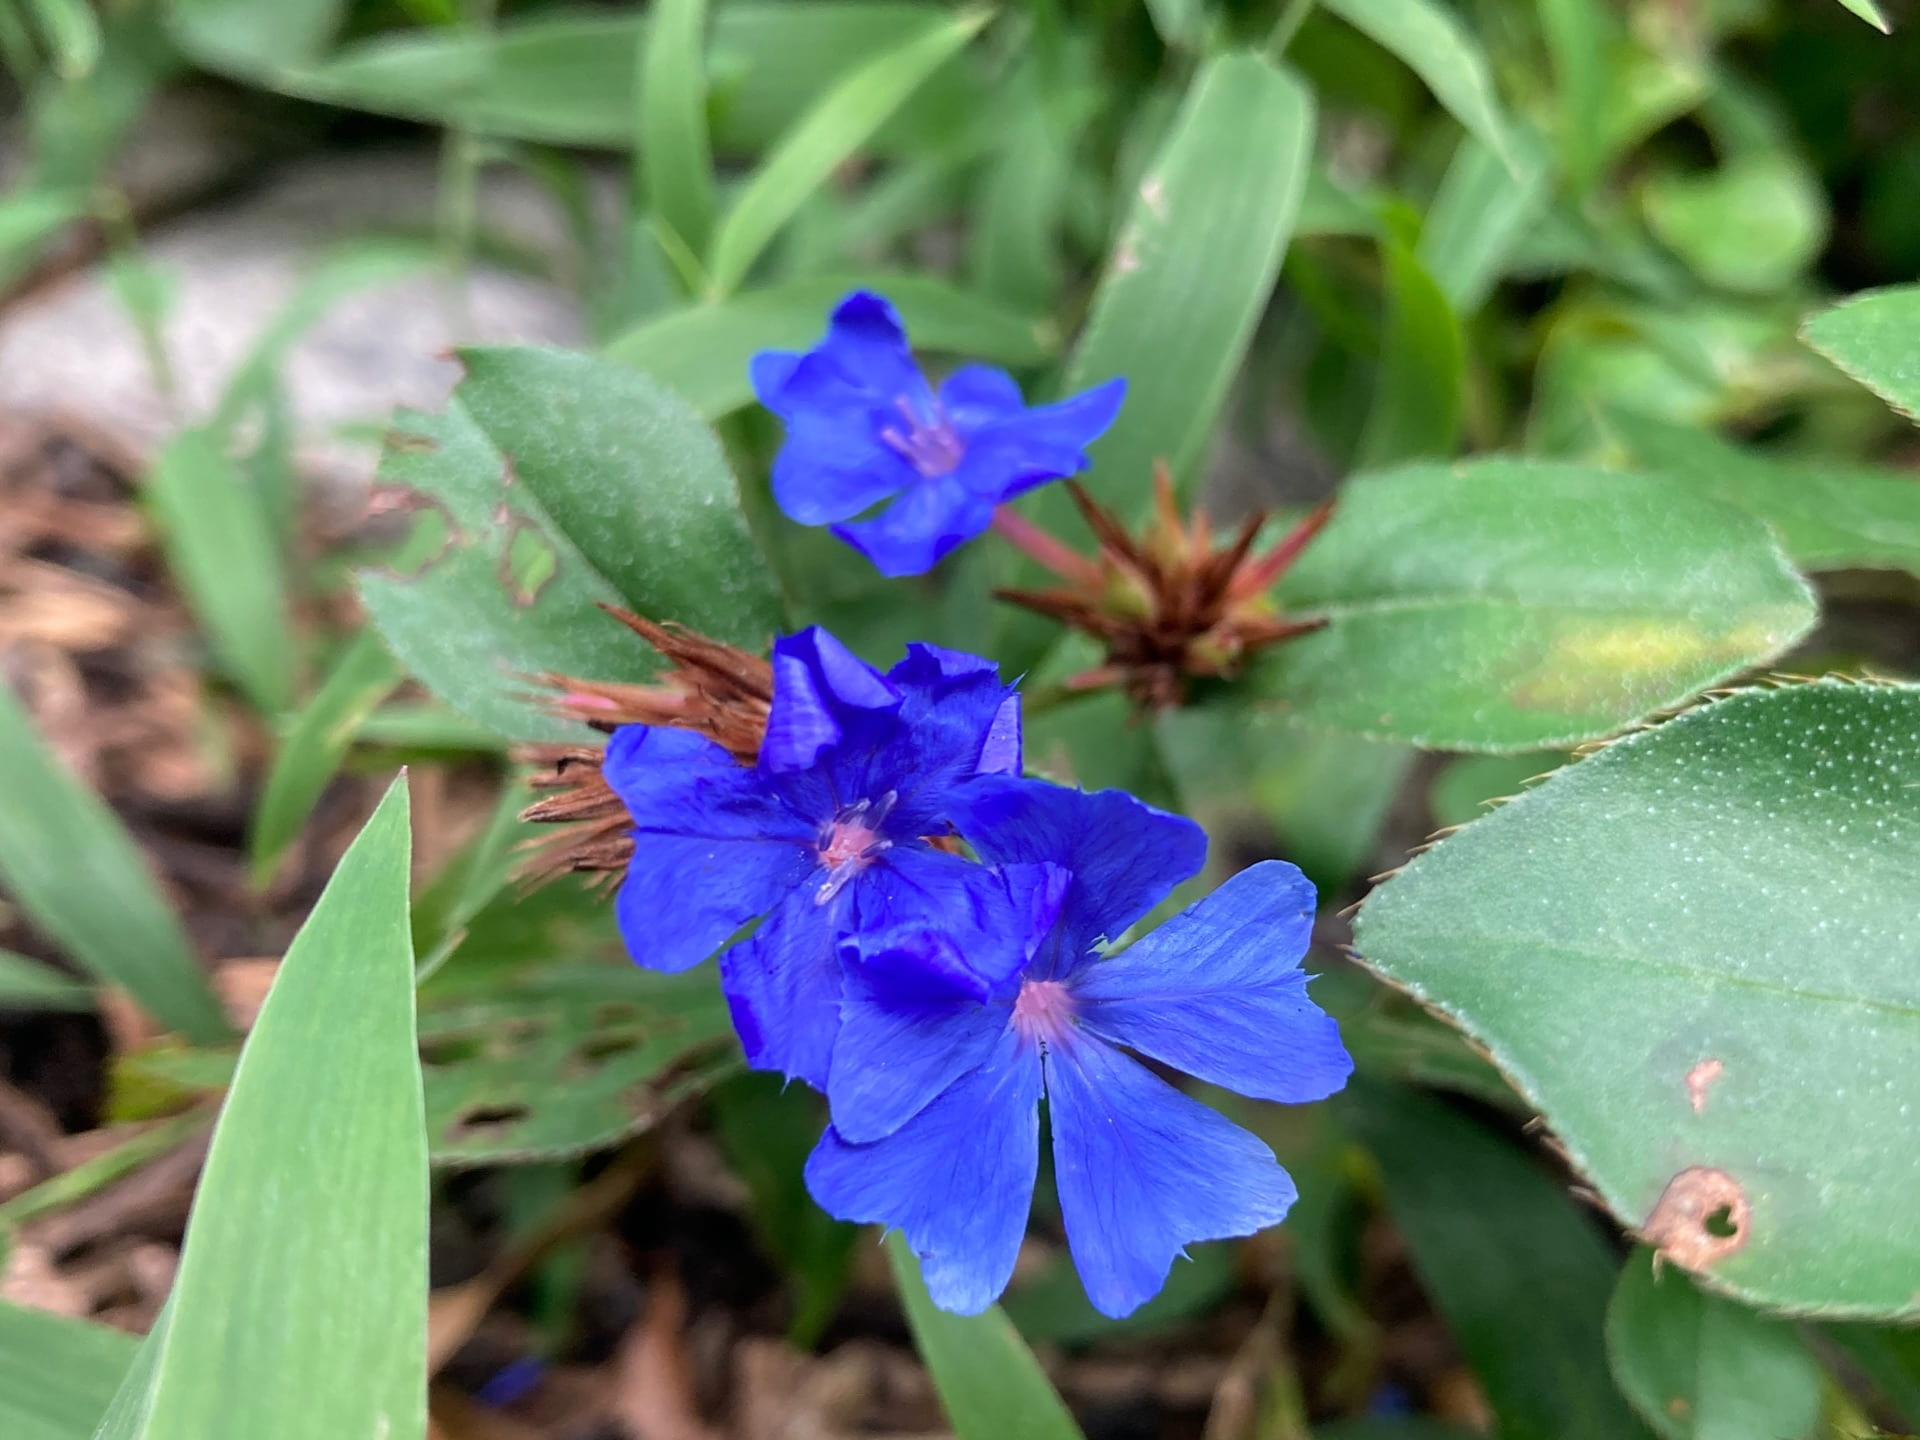 True blue flowers are very rare in nature, Ceratostigma plumbaginoides happily grows in our region.